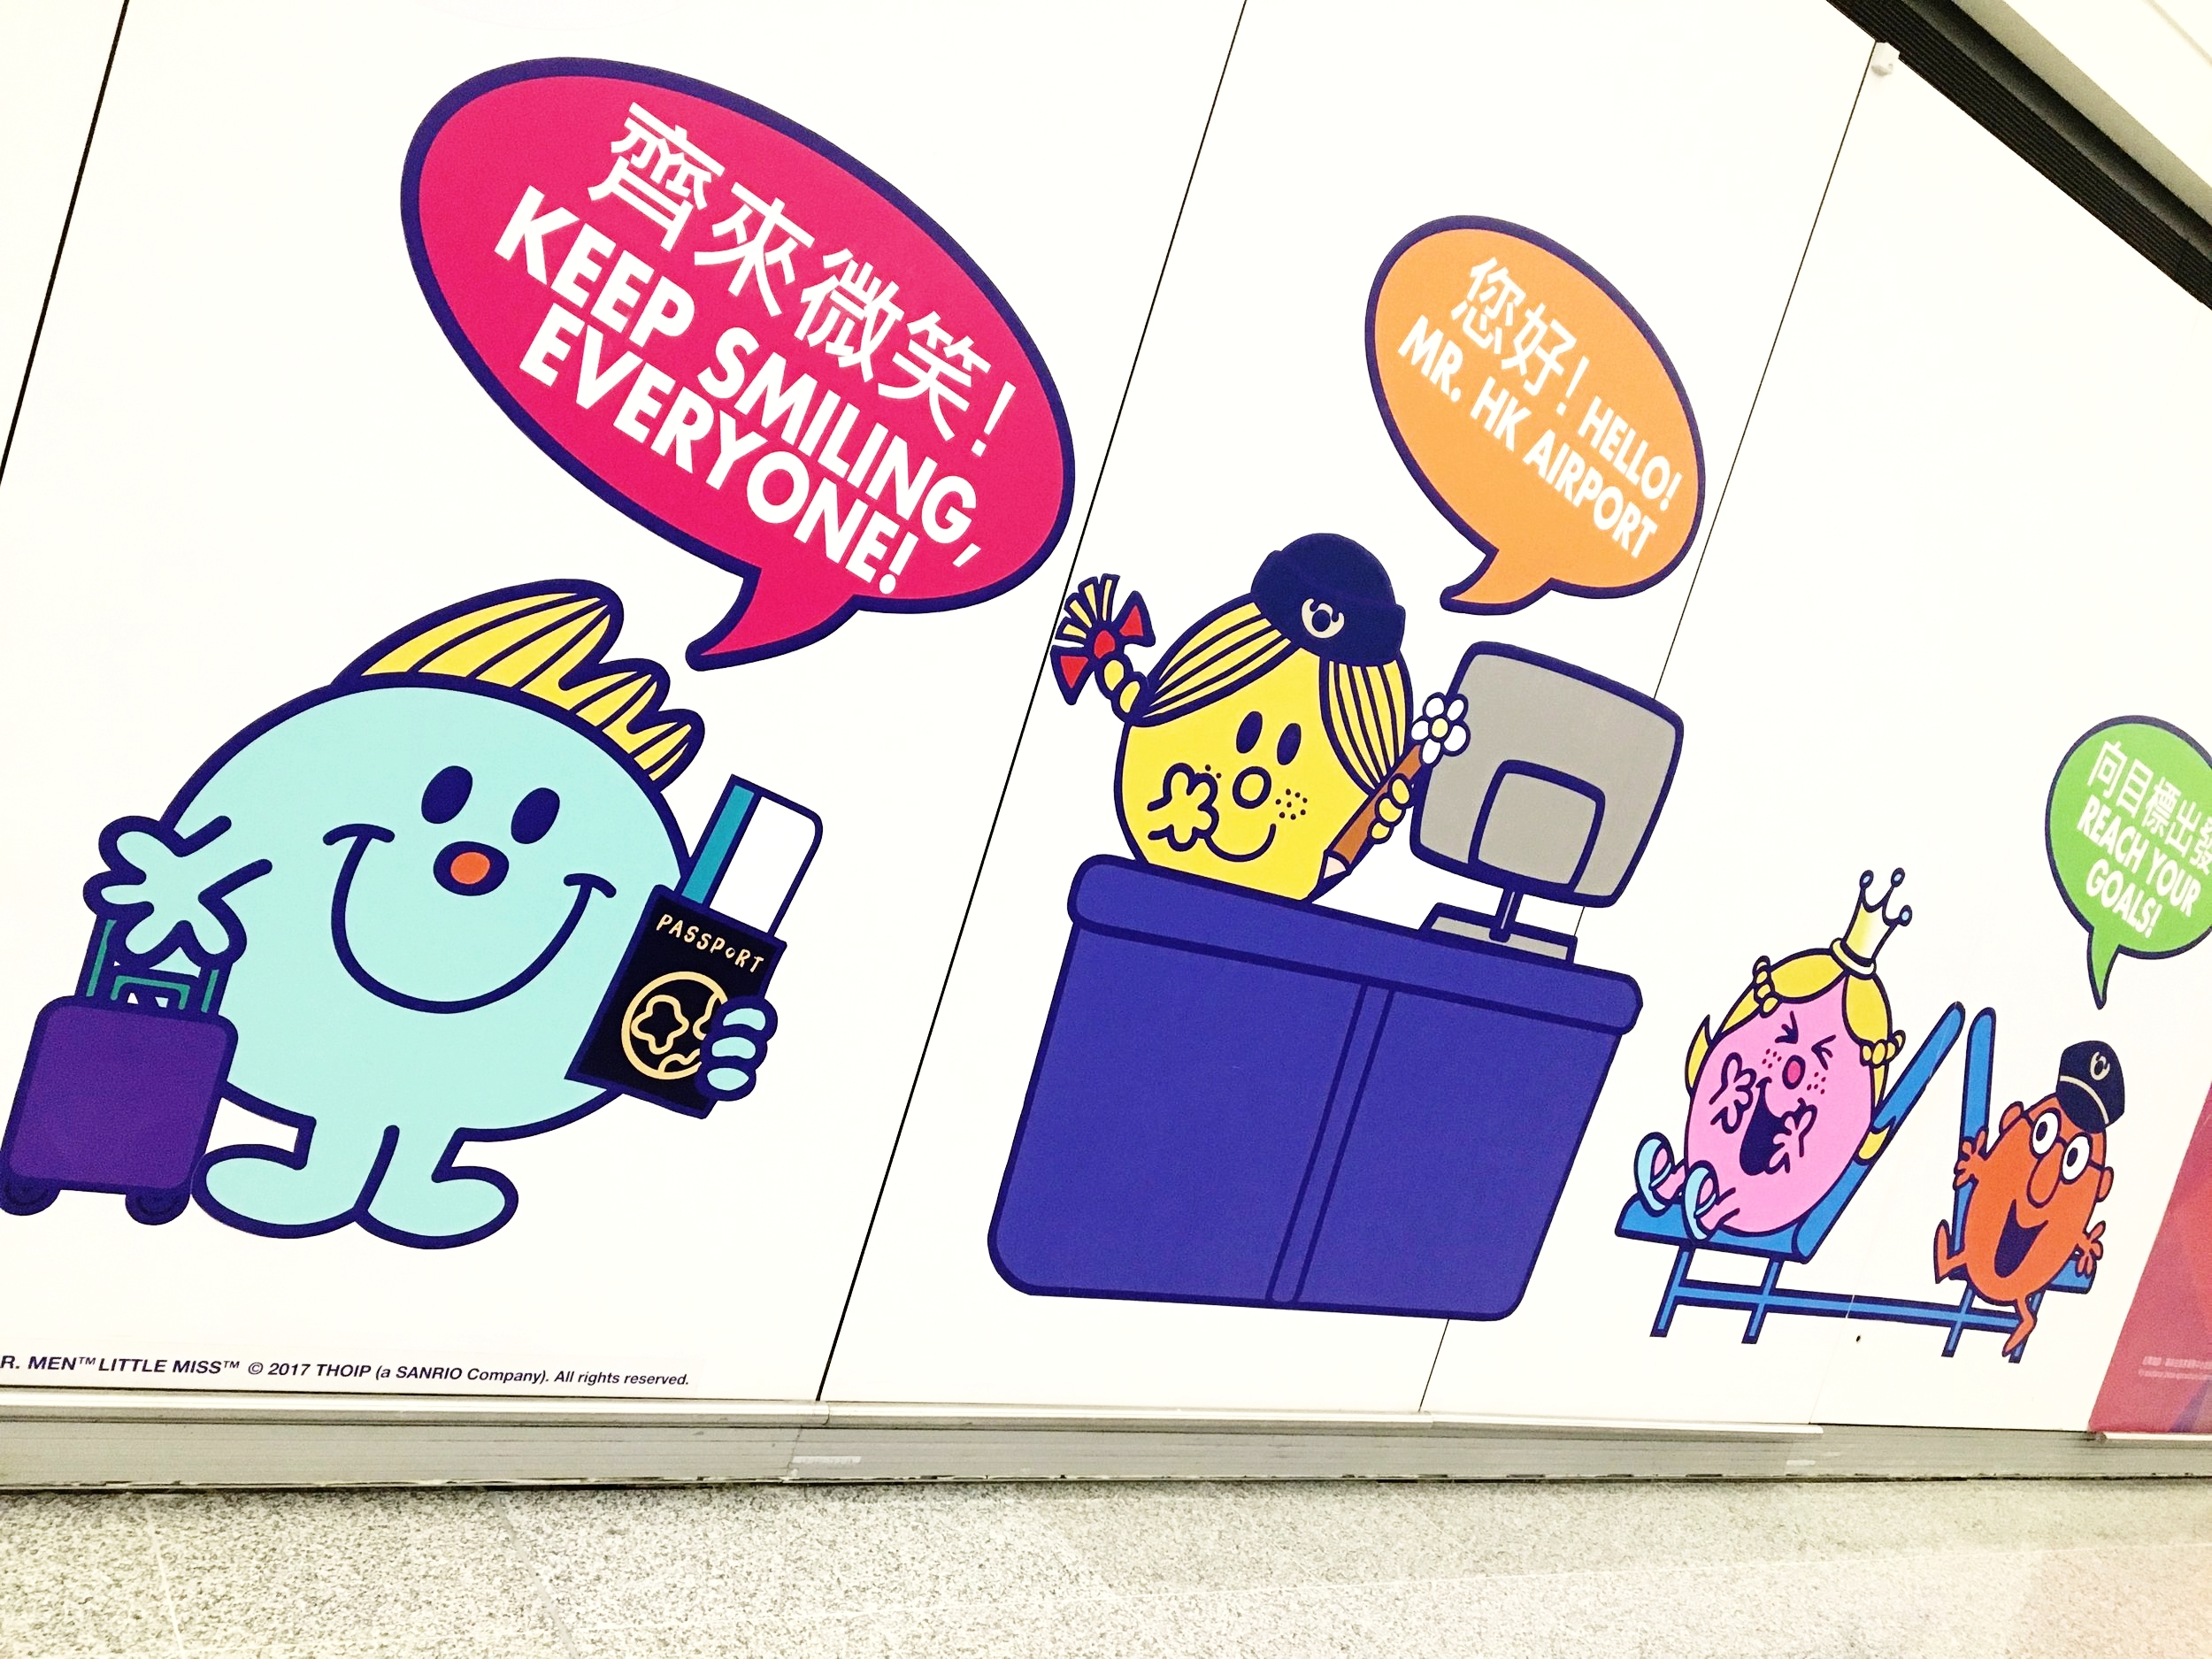 Positive messages in Hong Kong Airport.